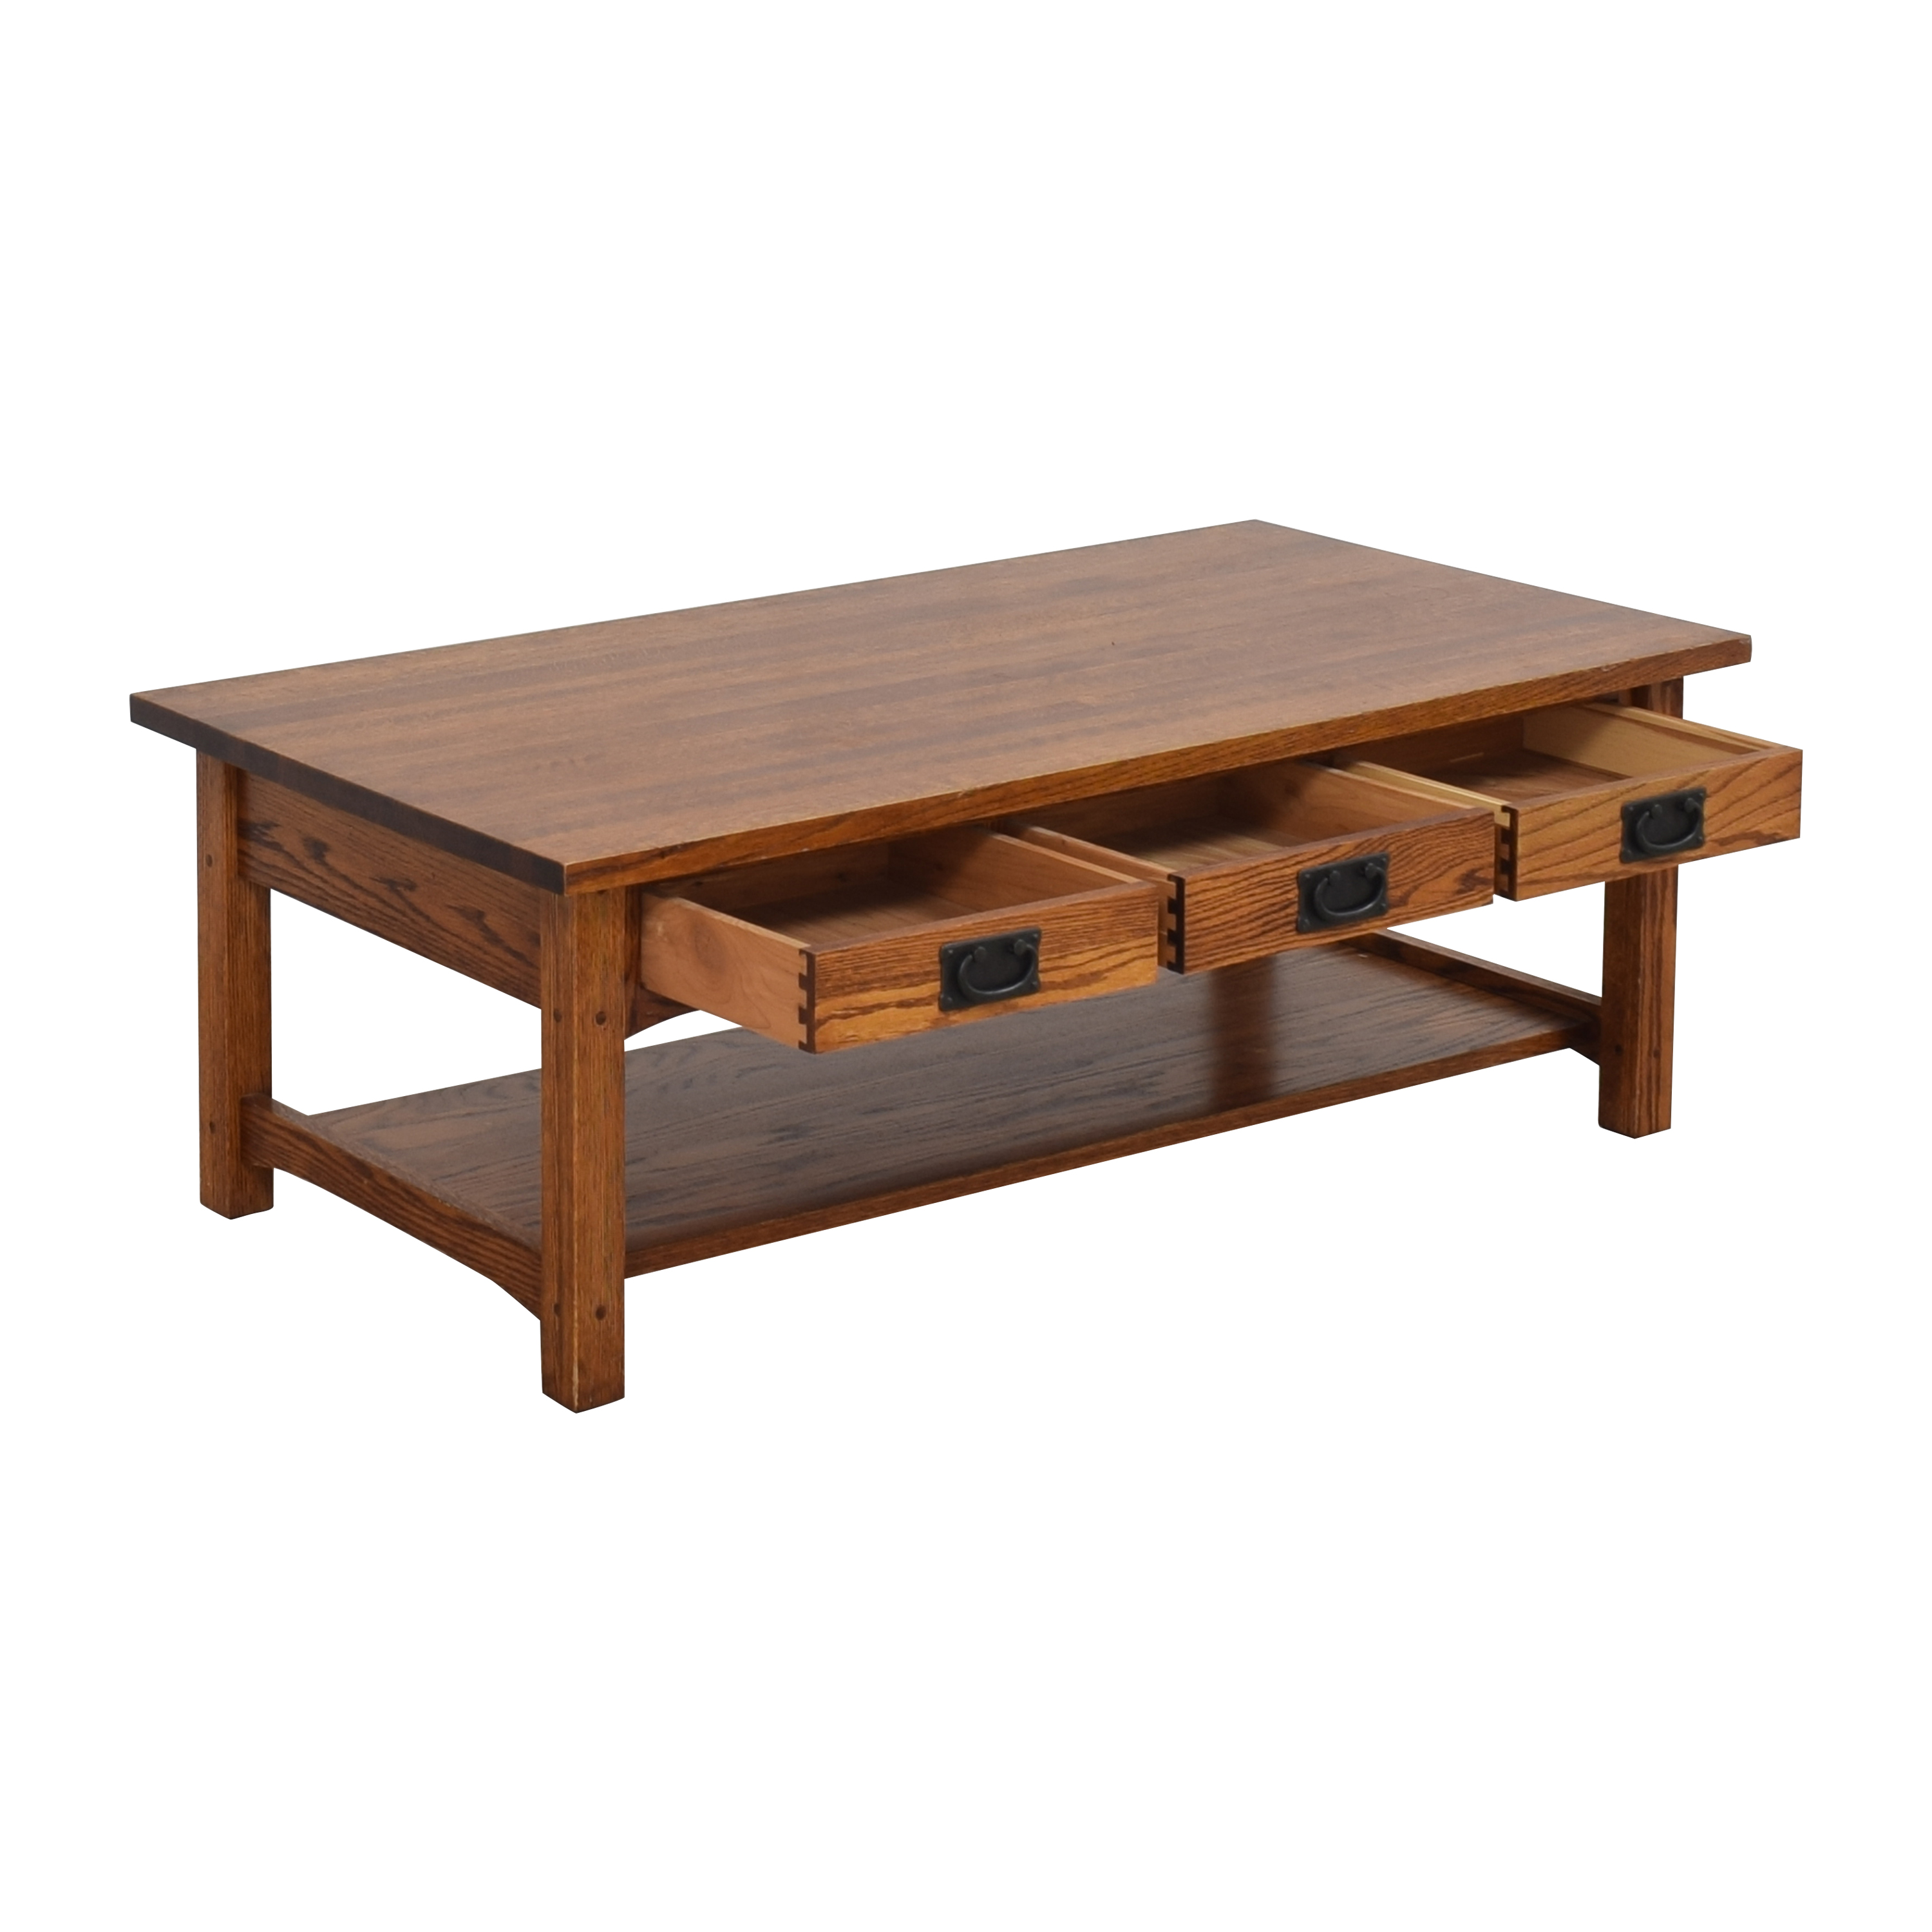 Restoration Hardware Coffee Table / Coffee Tables